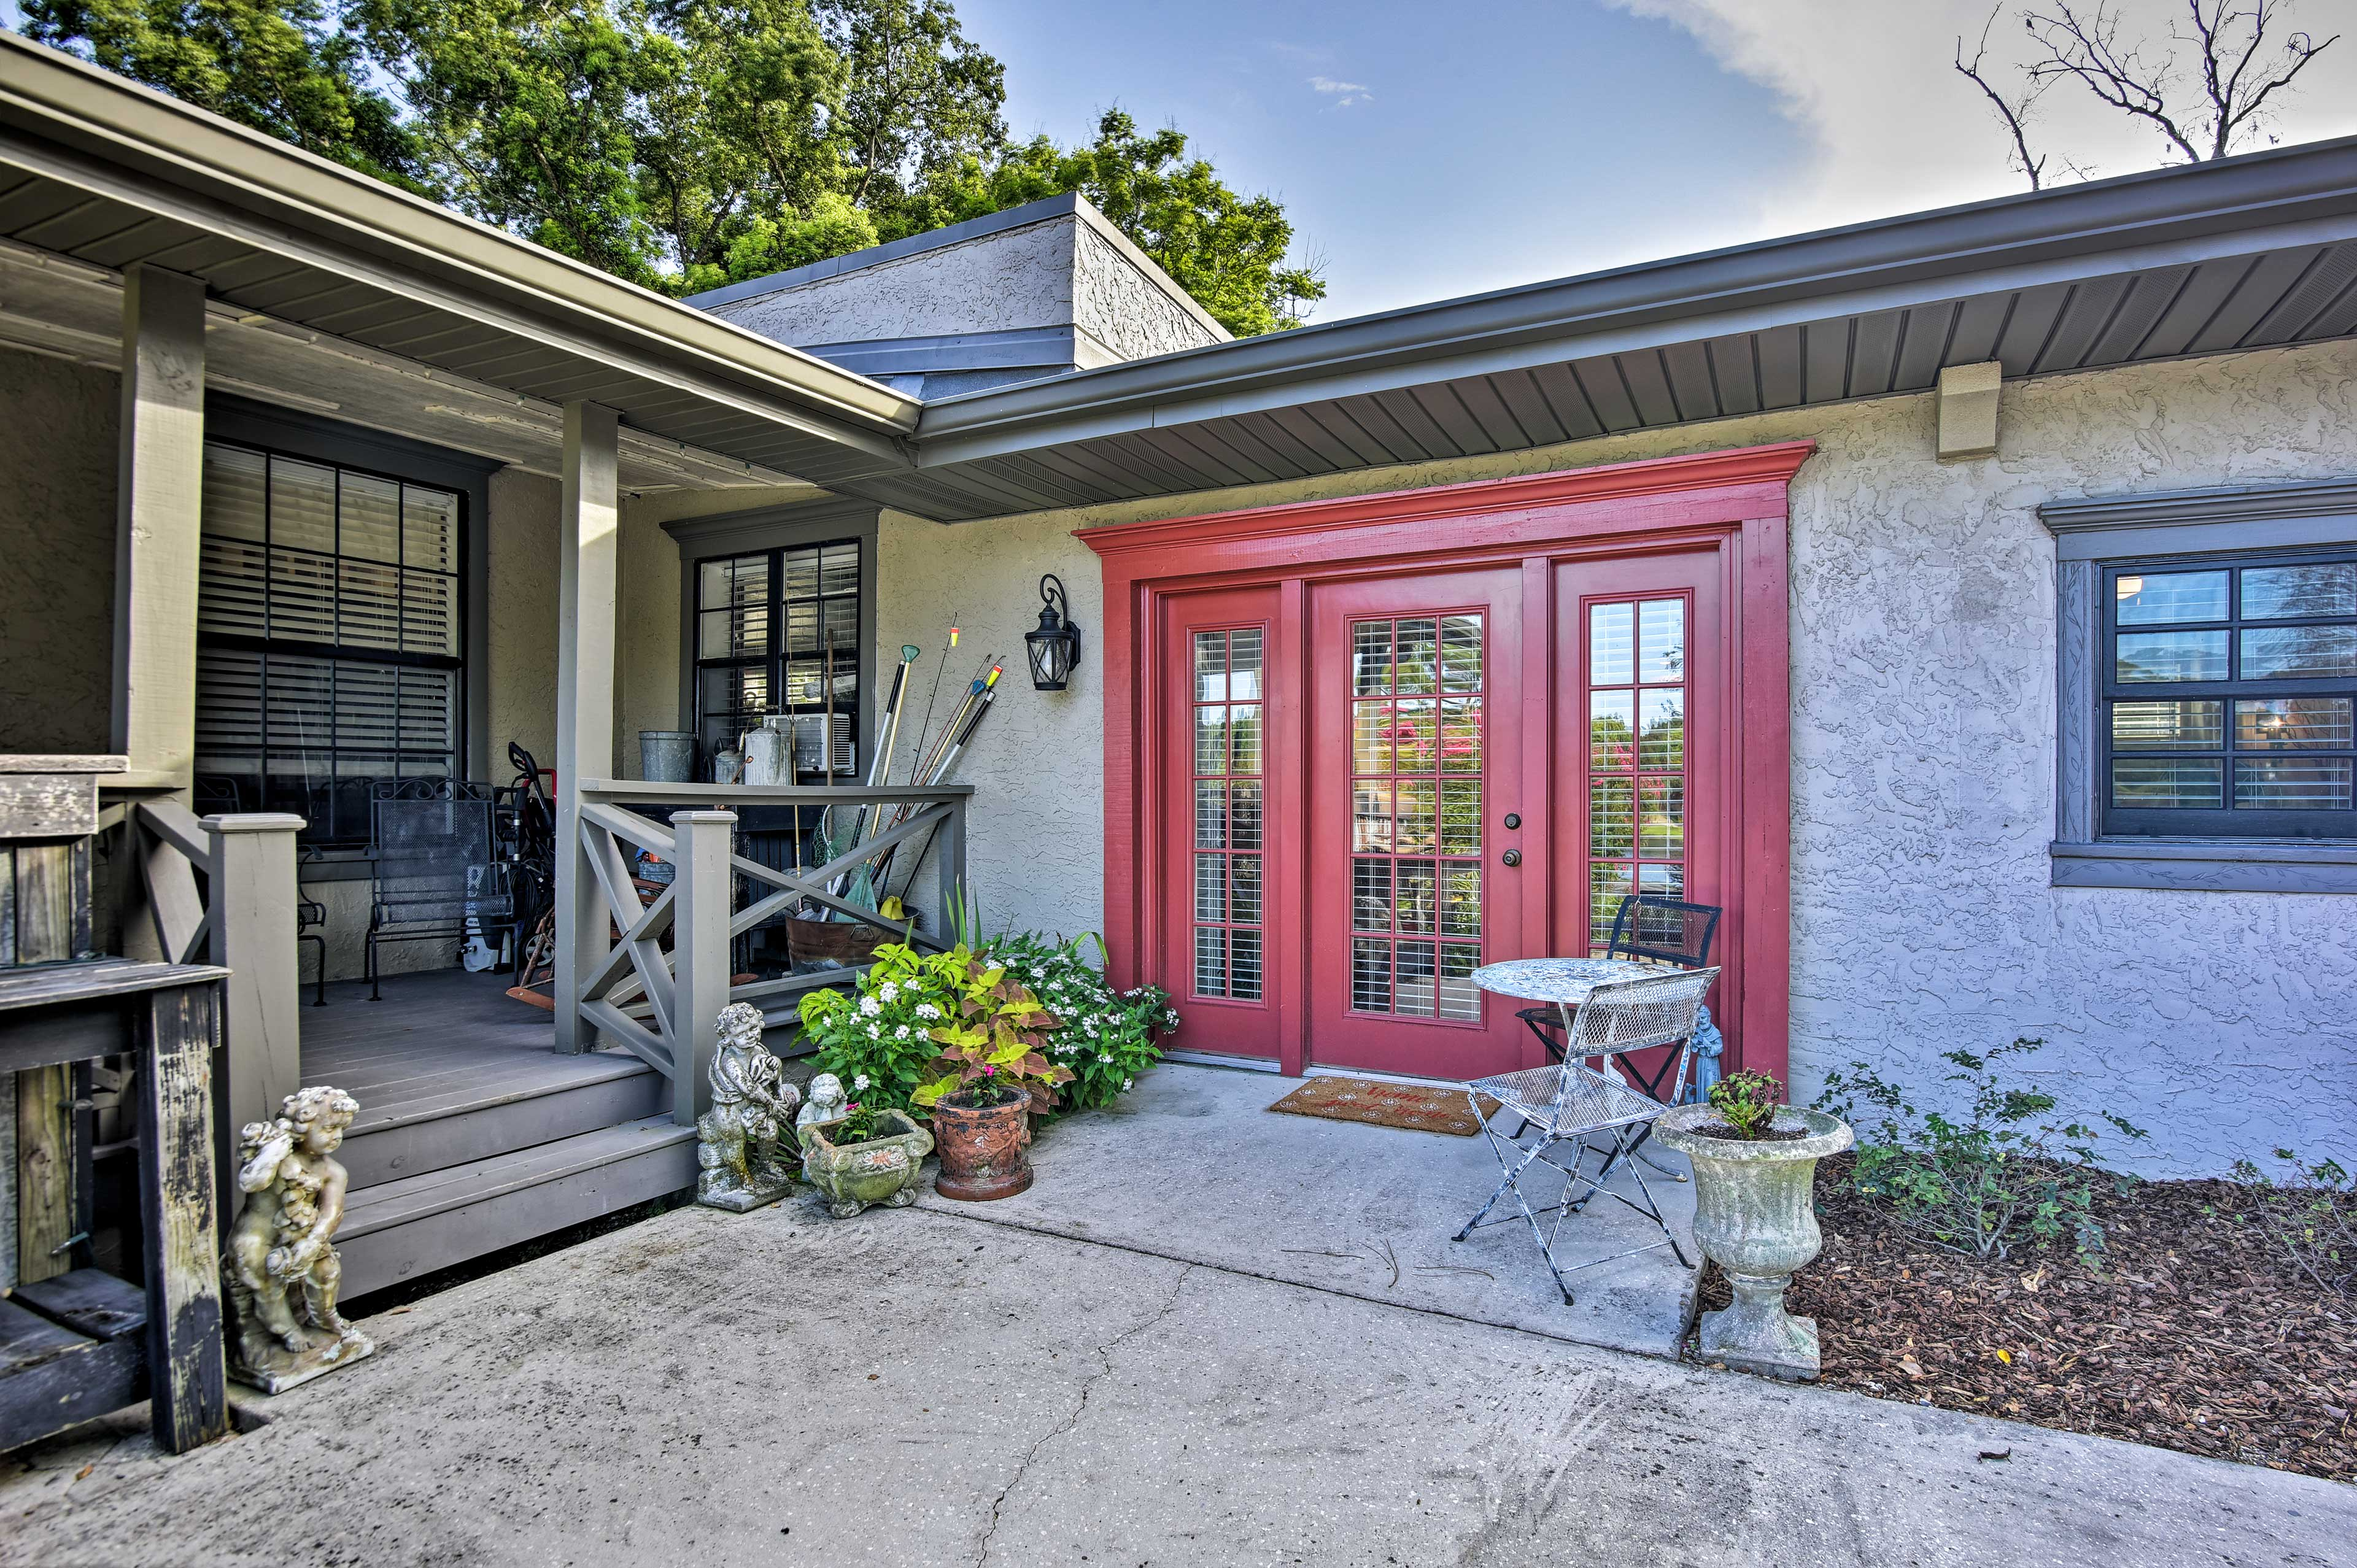 Book this charming Altamonte Springs vacation rental for a romantic getaway.